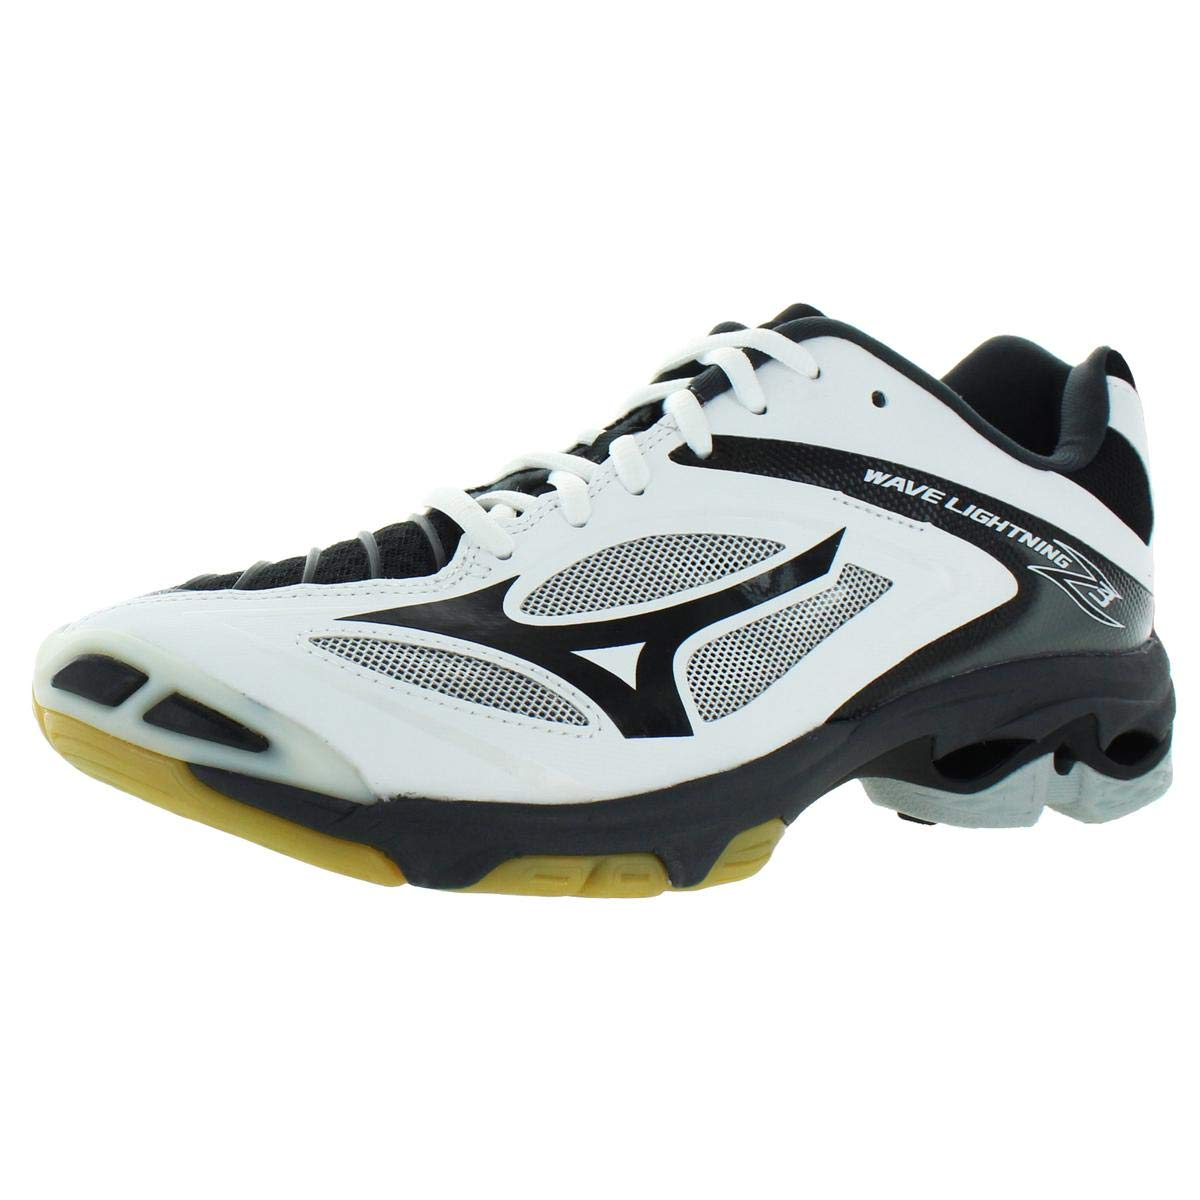 Mizuno Mens Wave Lightning Z3 Lace-Up Volleyball Shoes Black 11.5 Medium (D) by Mizuno